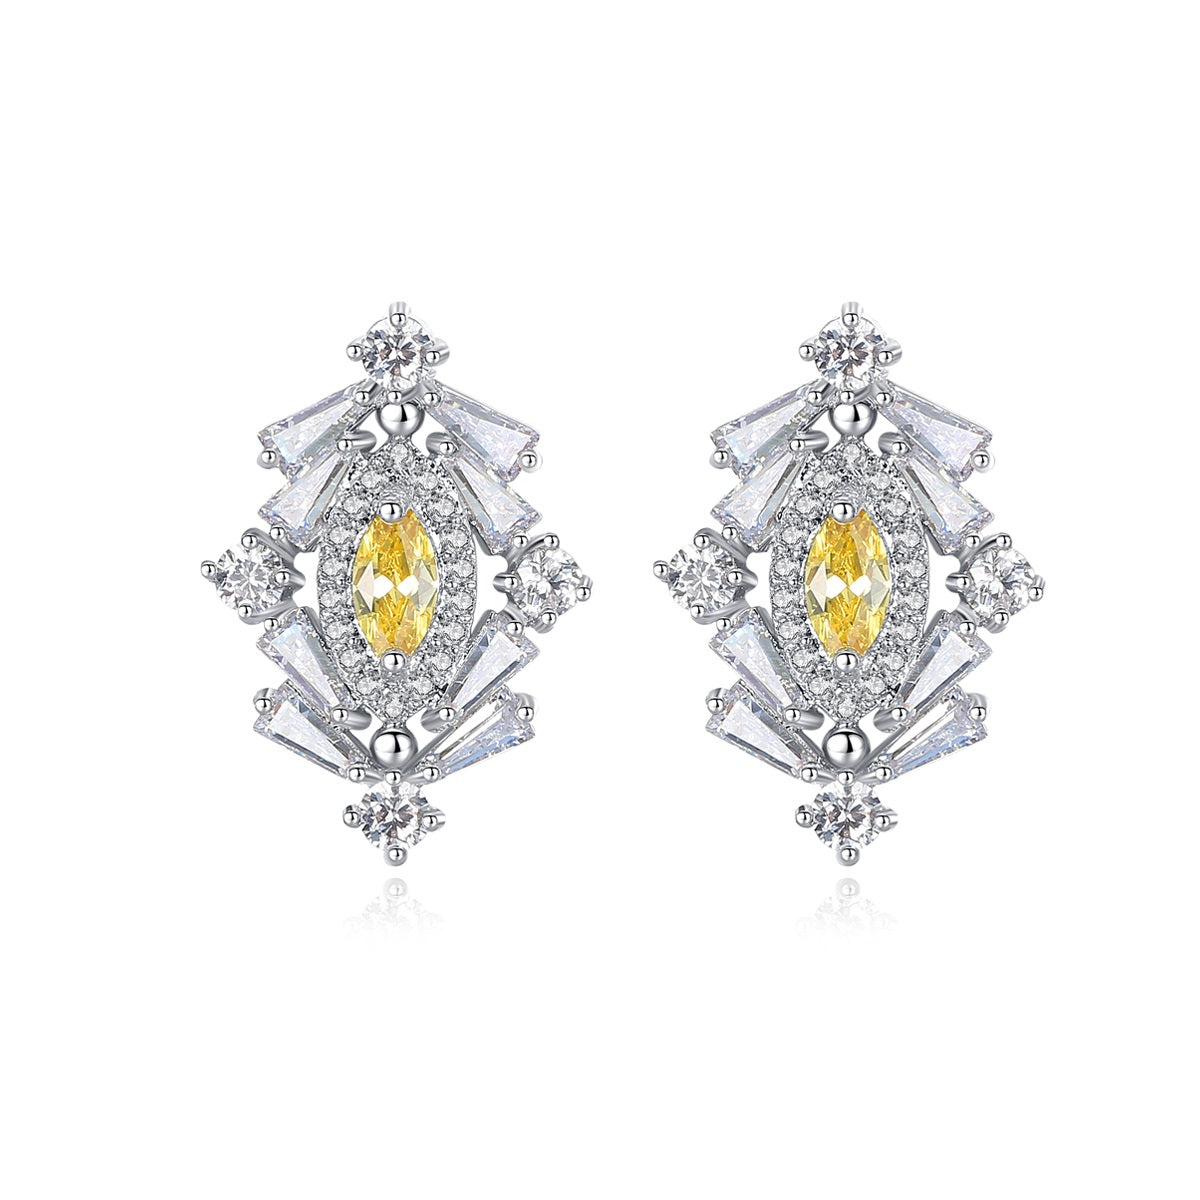 ArtDeco Rodium Plated Earrings